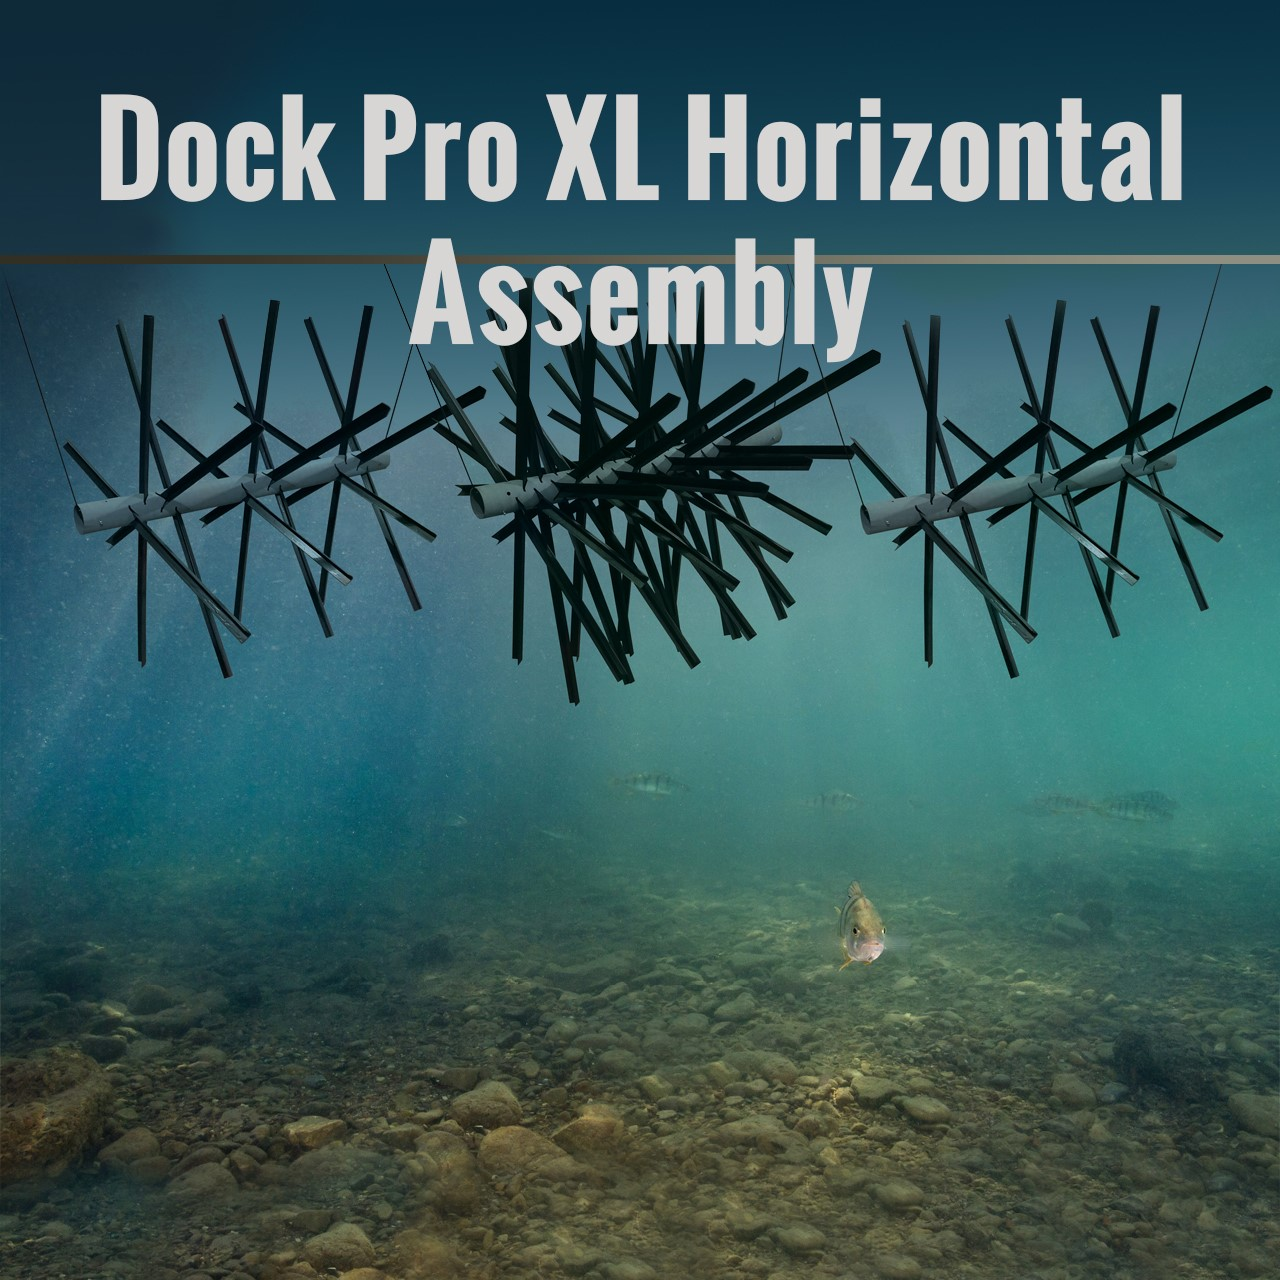 Dock Pro Horizontal Assembly